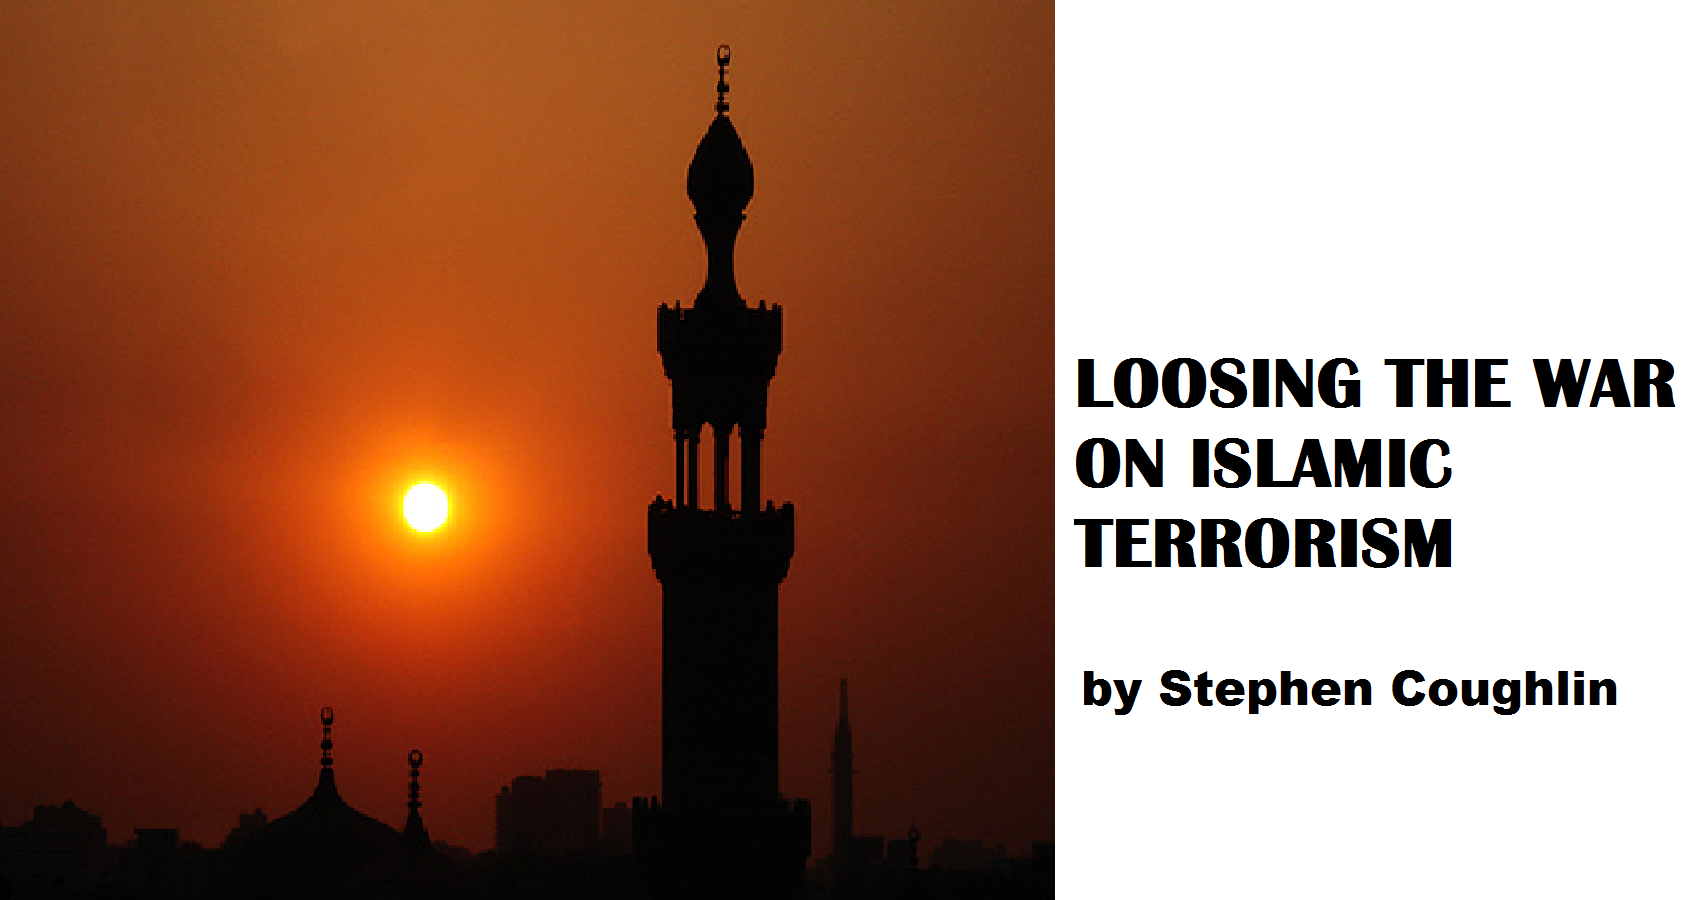 spillwords.com Loosing The War on Islamic Terrorism by Stephen Coughlin